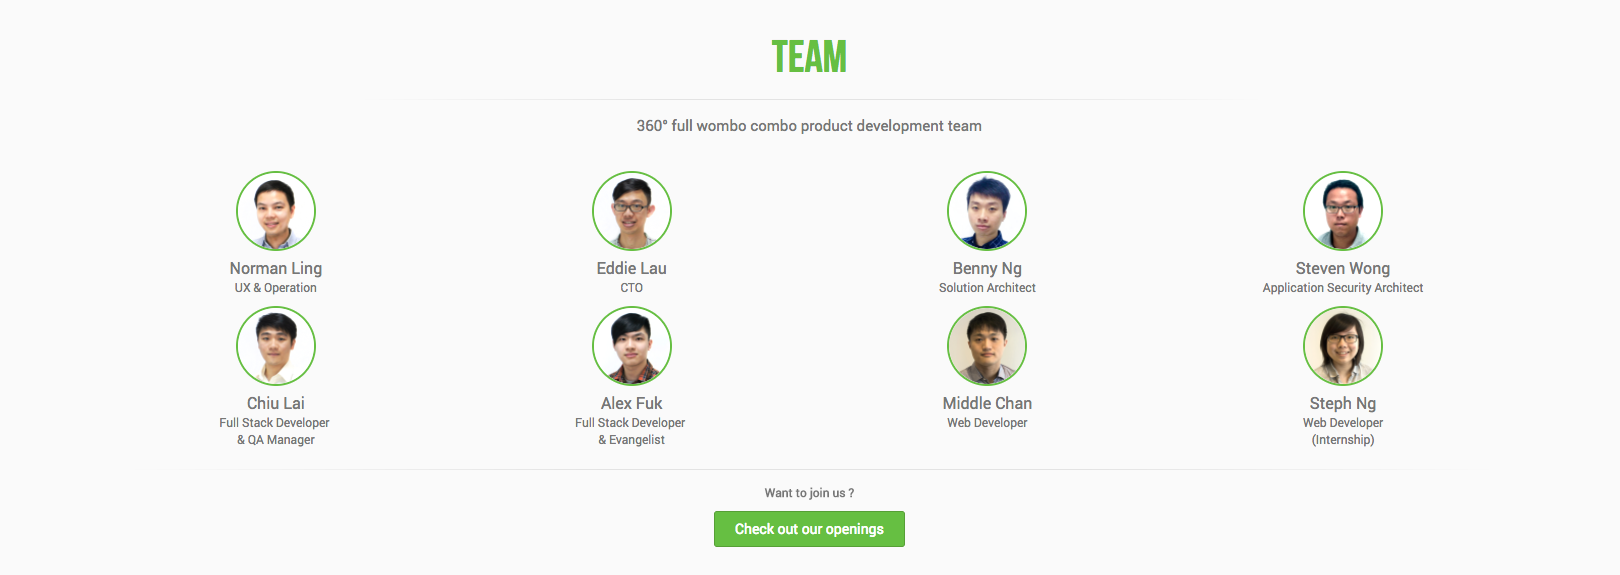 May 2017 F5 Works team